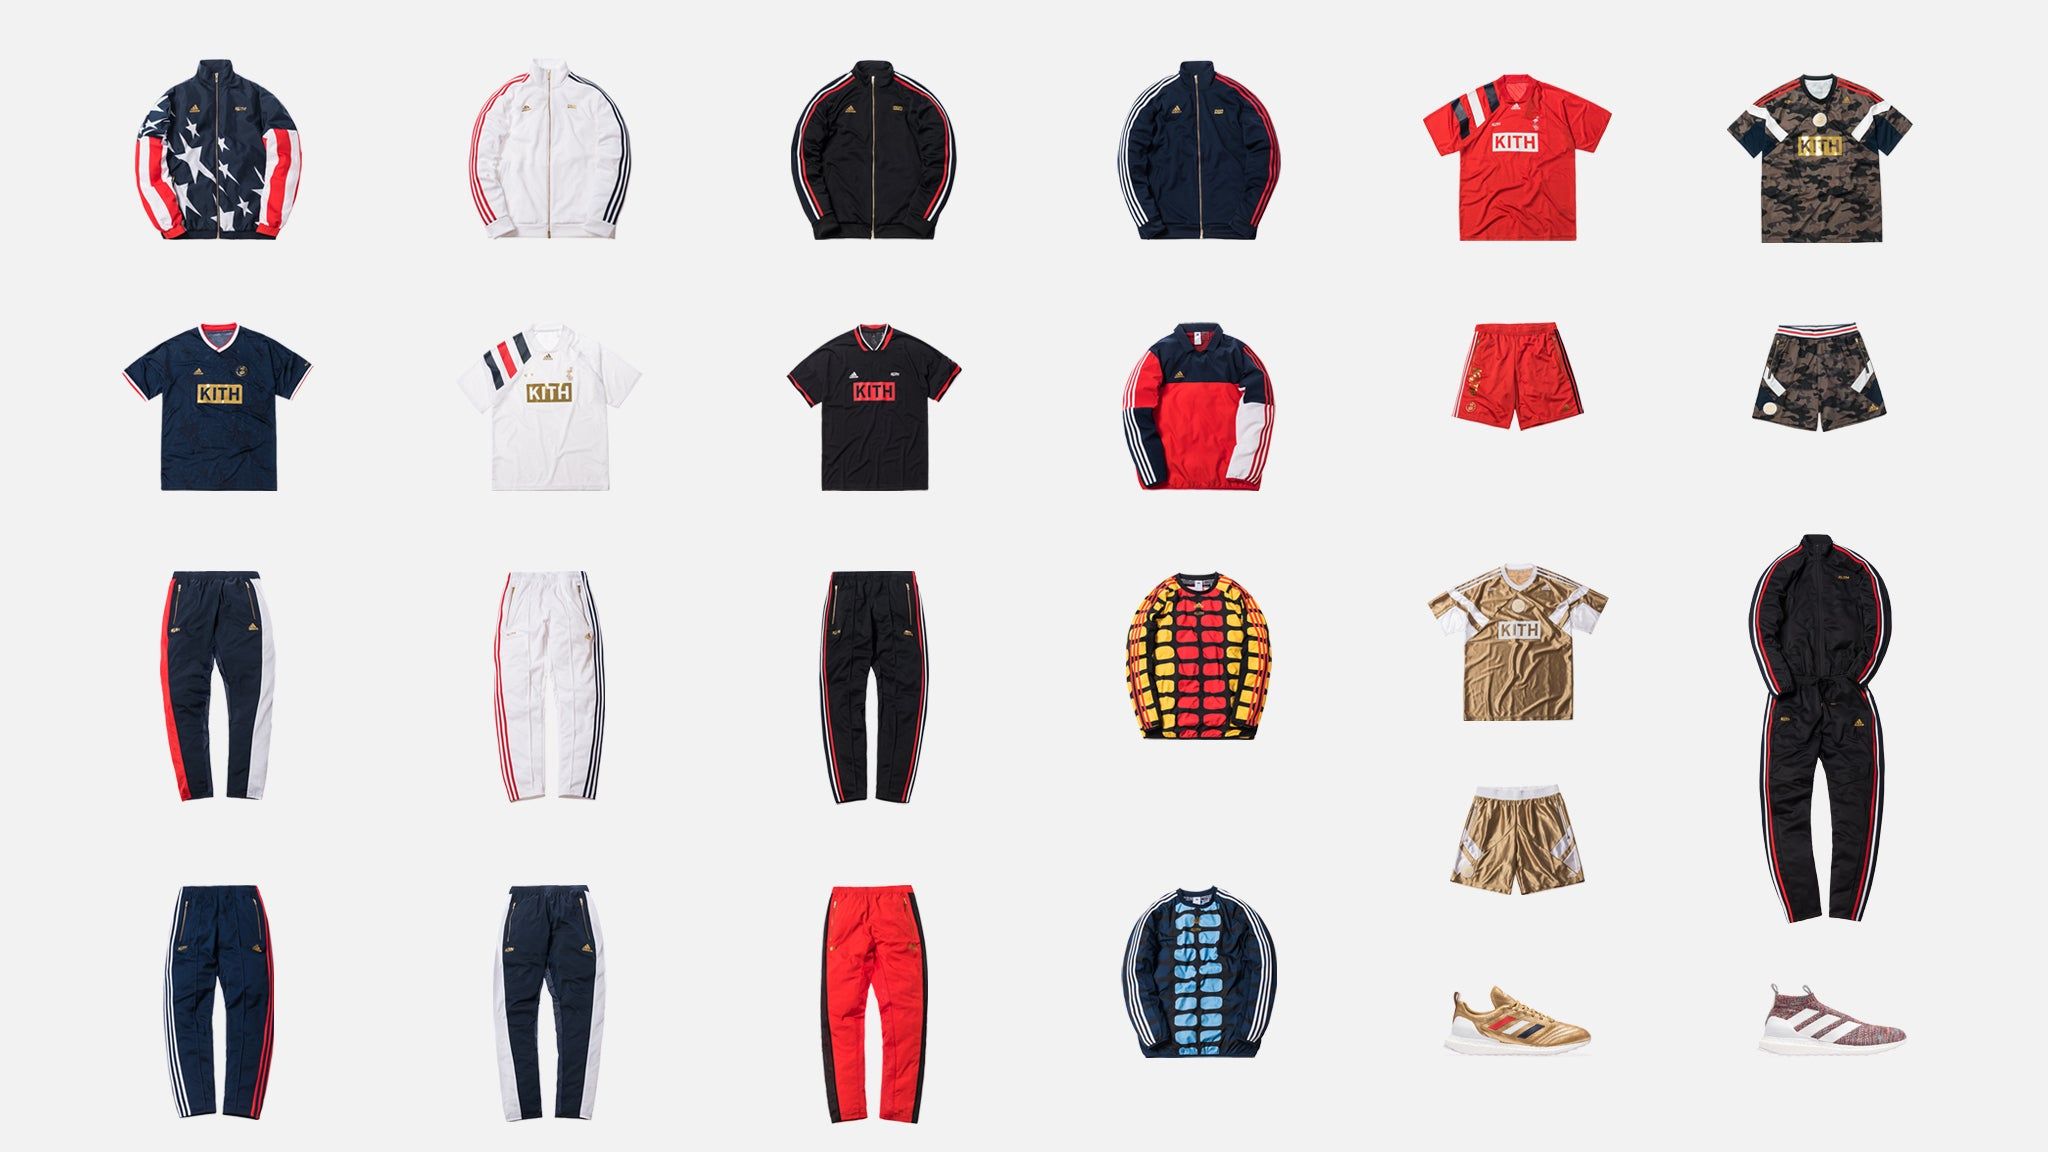 3 X A Closer At Chapter Look Soccer Kith Adidas hQodBsCxtr